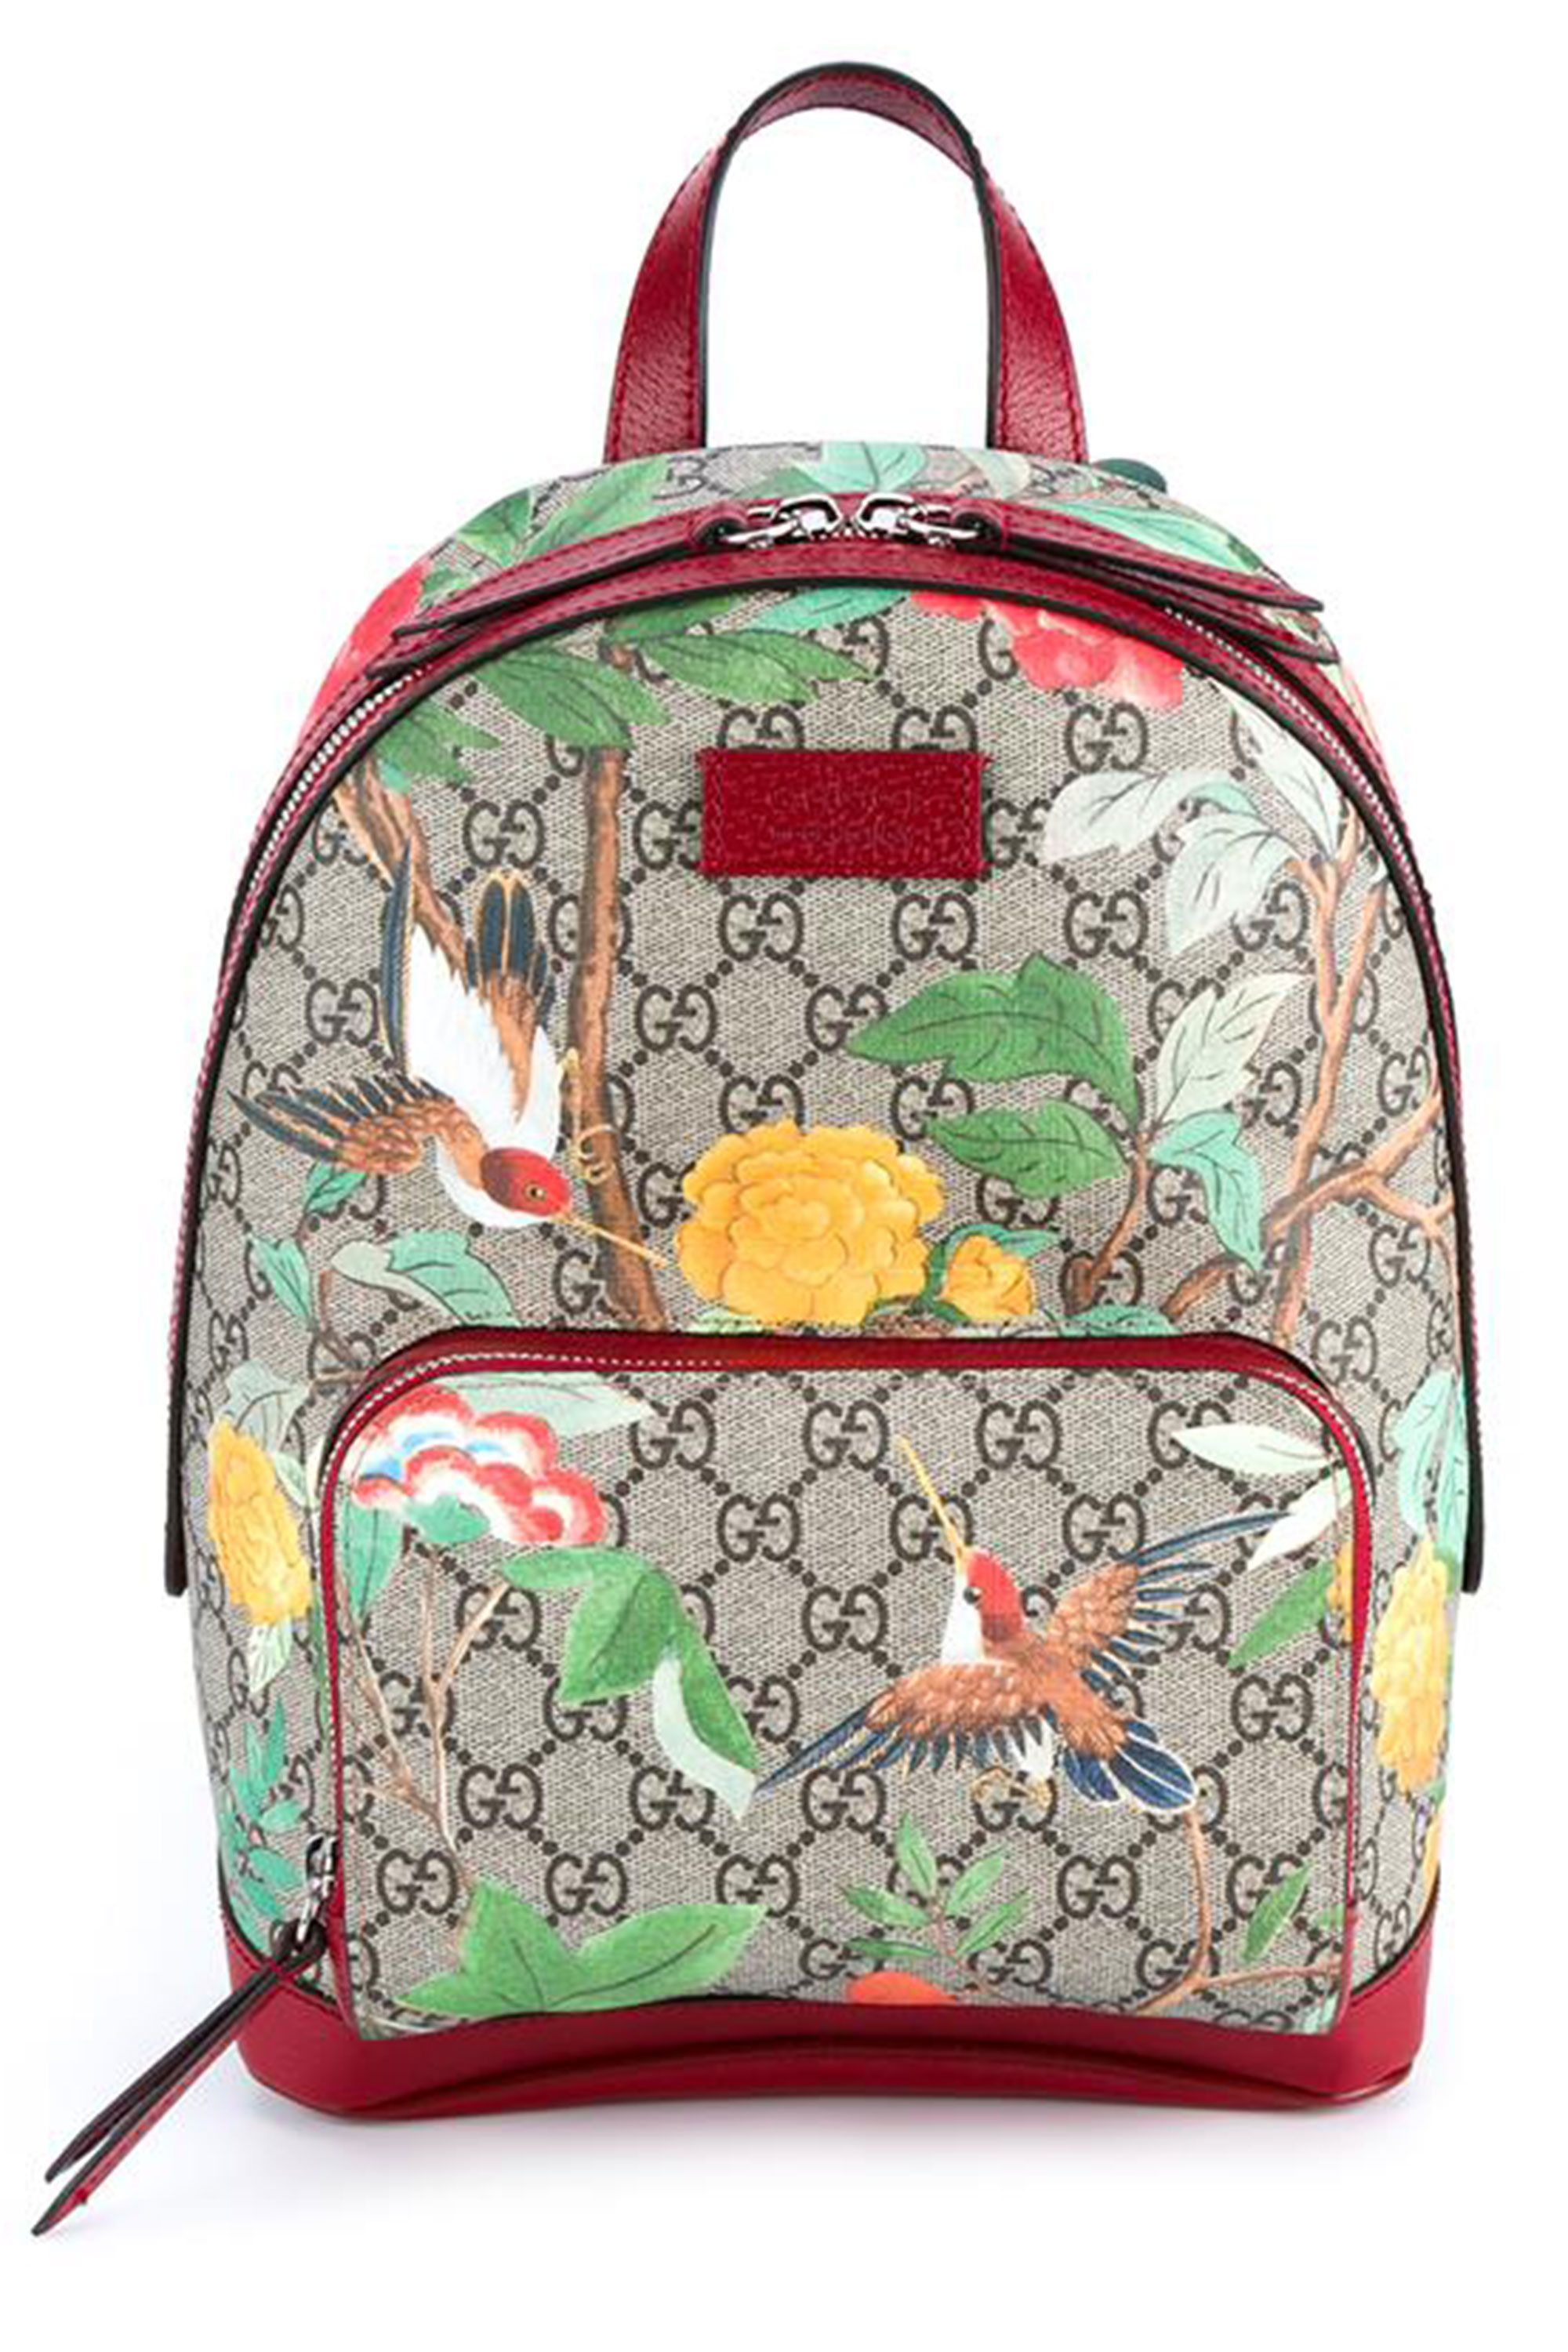 6a69301ad86 10 of the most fashionable backpacks to buy this season